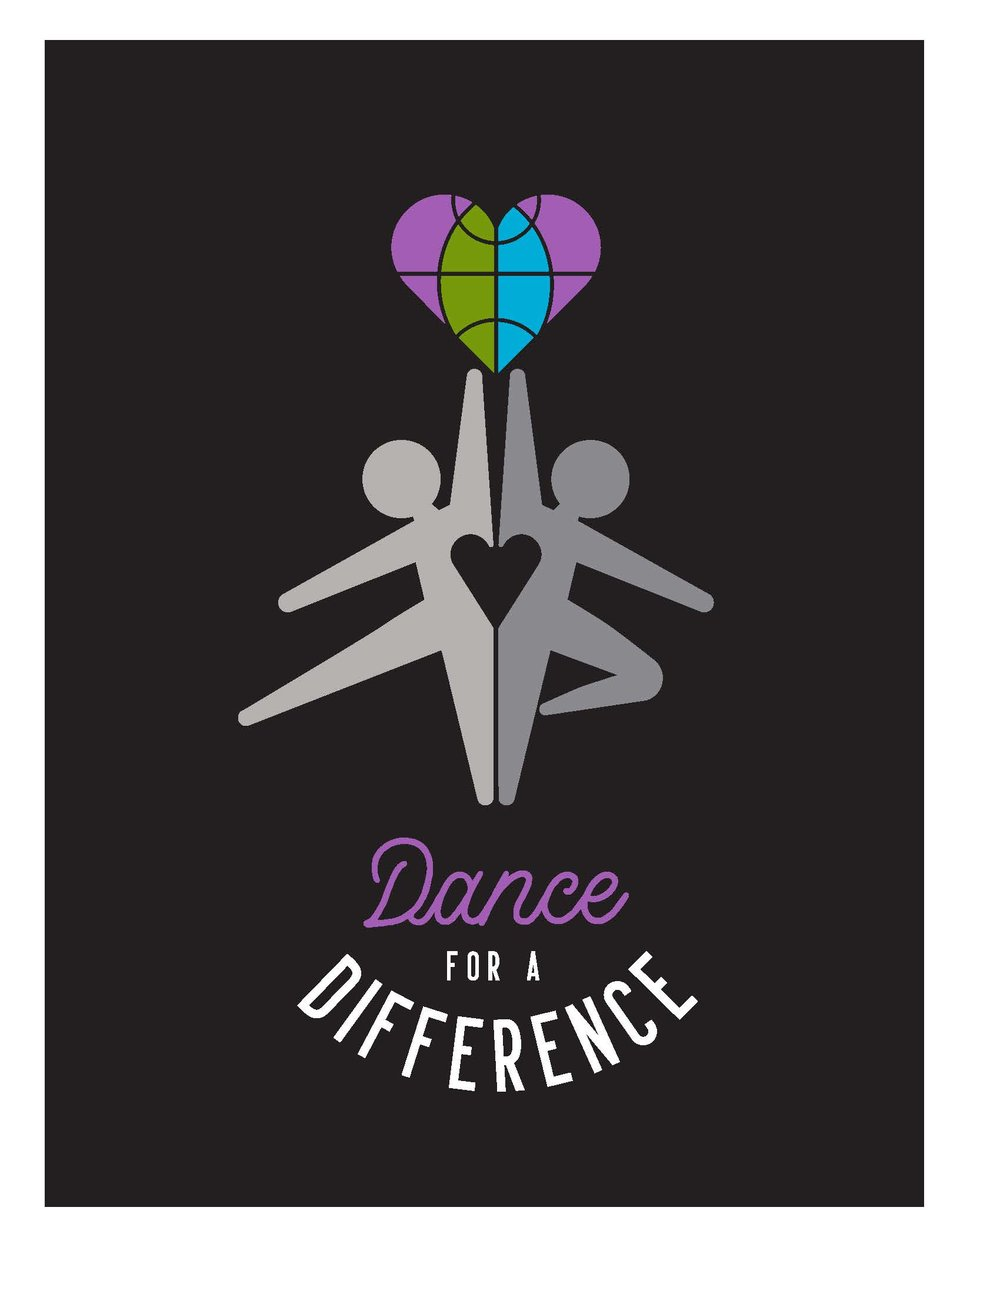 DanceForDifferencLogo_FINAL_TshirtPrint_Page_1.jpg